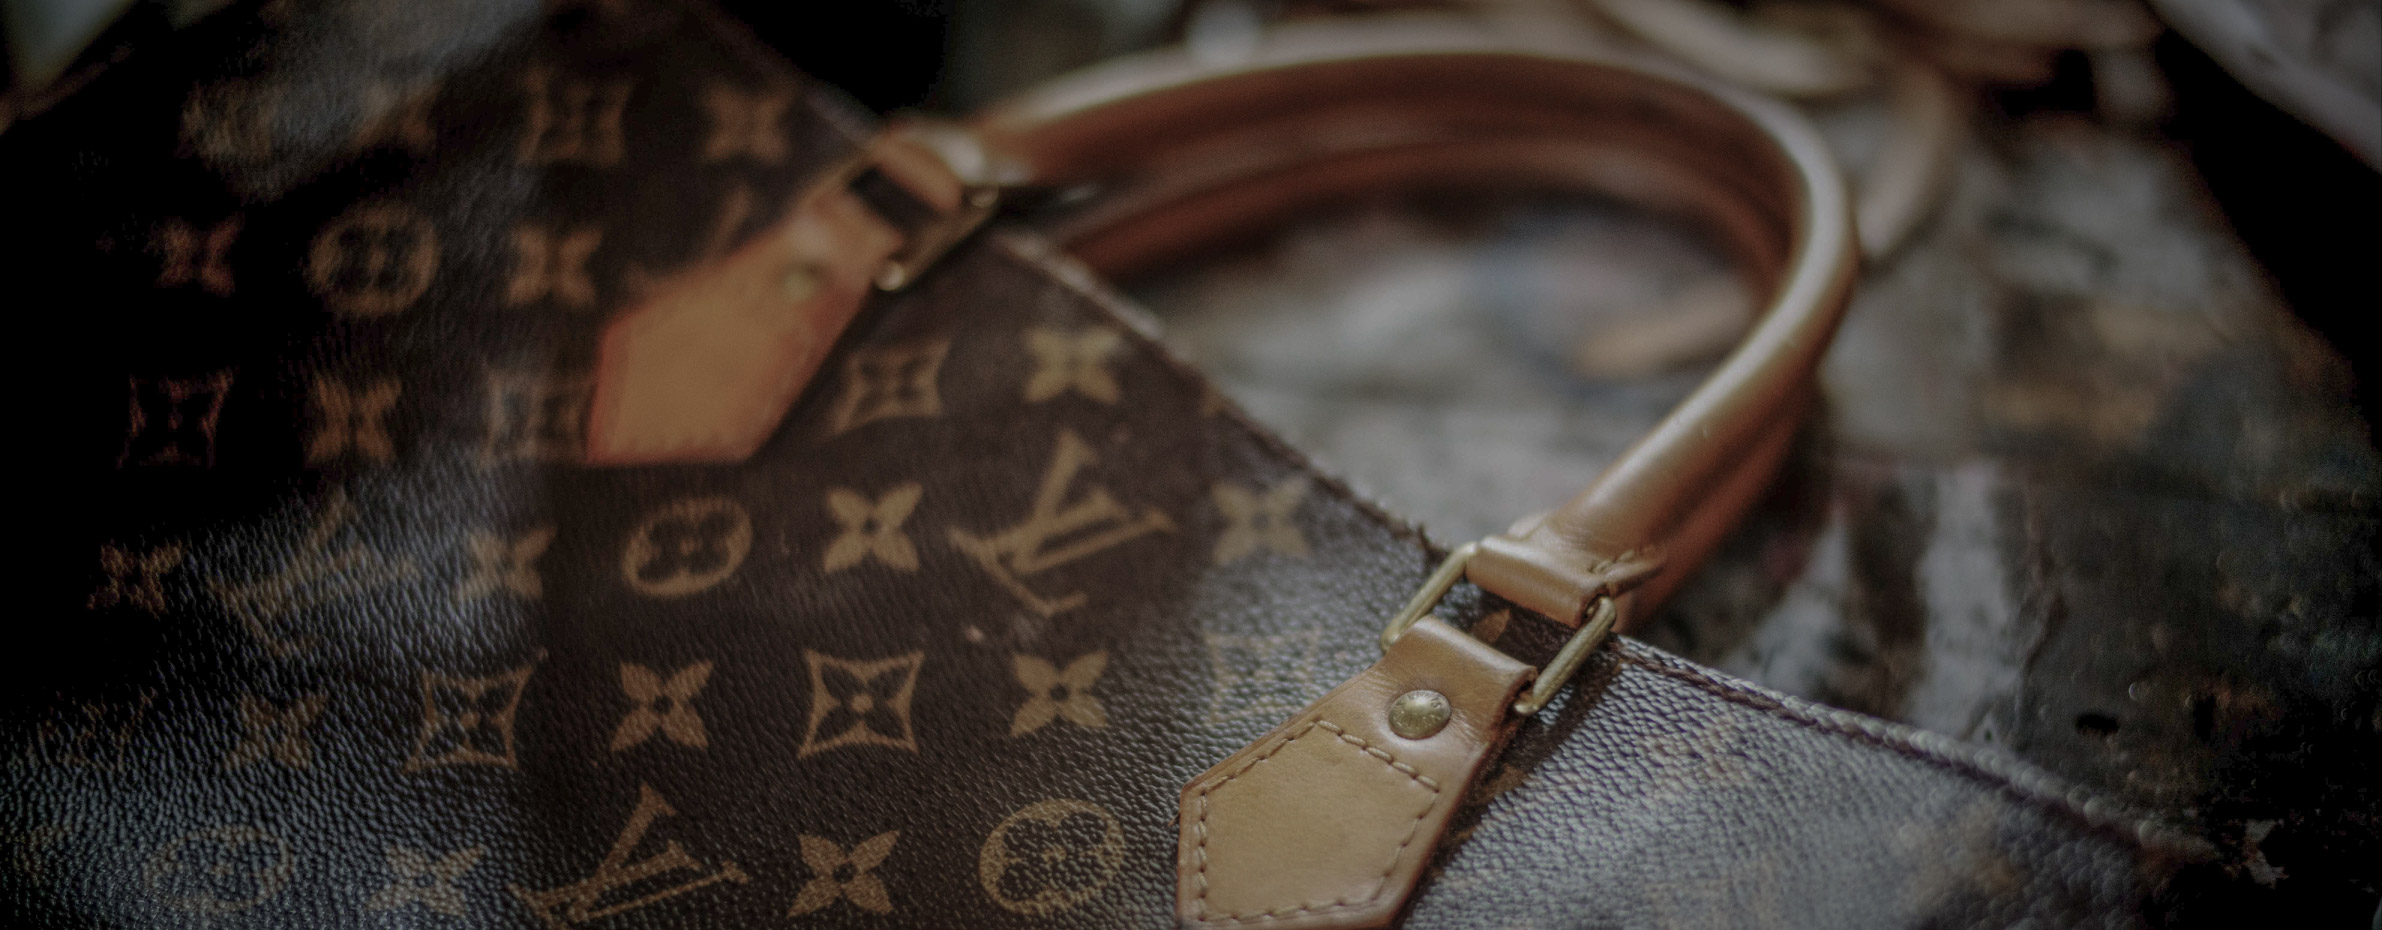 How to Repair Damaged Louis Vuitton Bag